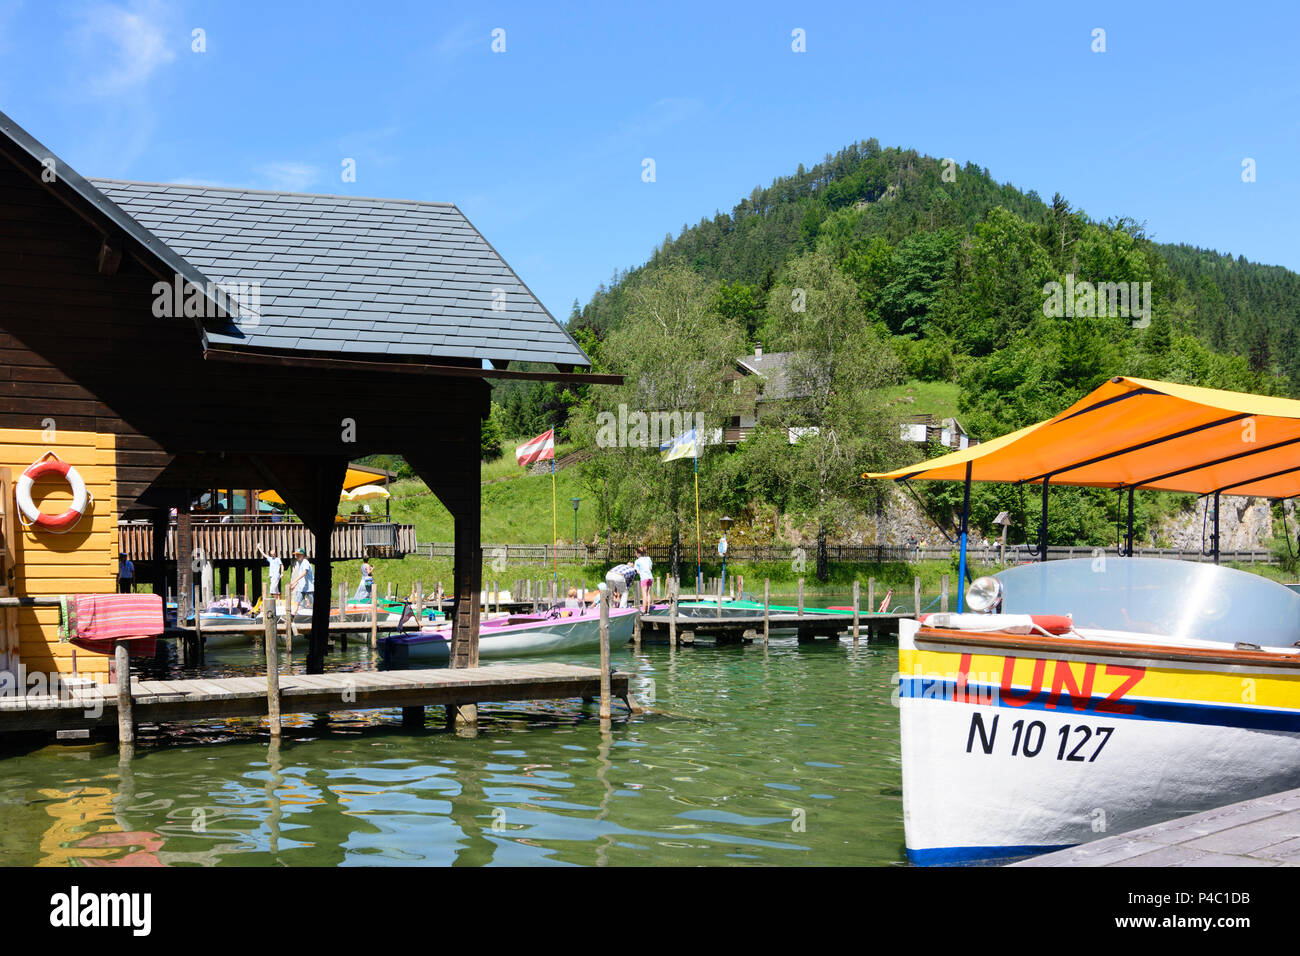 Lunz am See, lake Lunzer See, boat house, rental boats